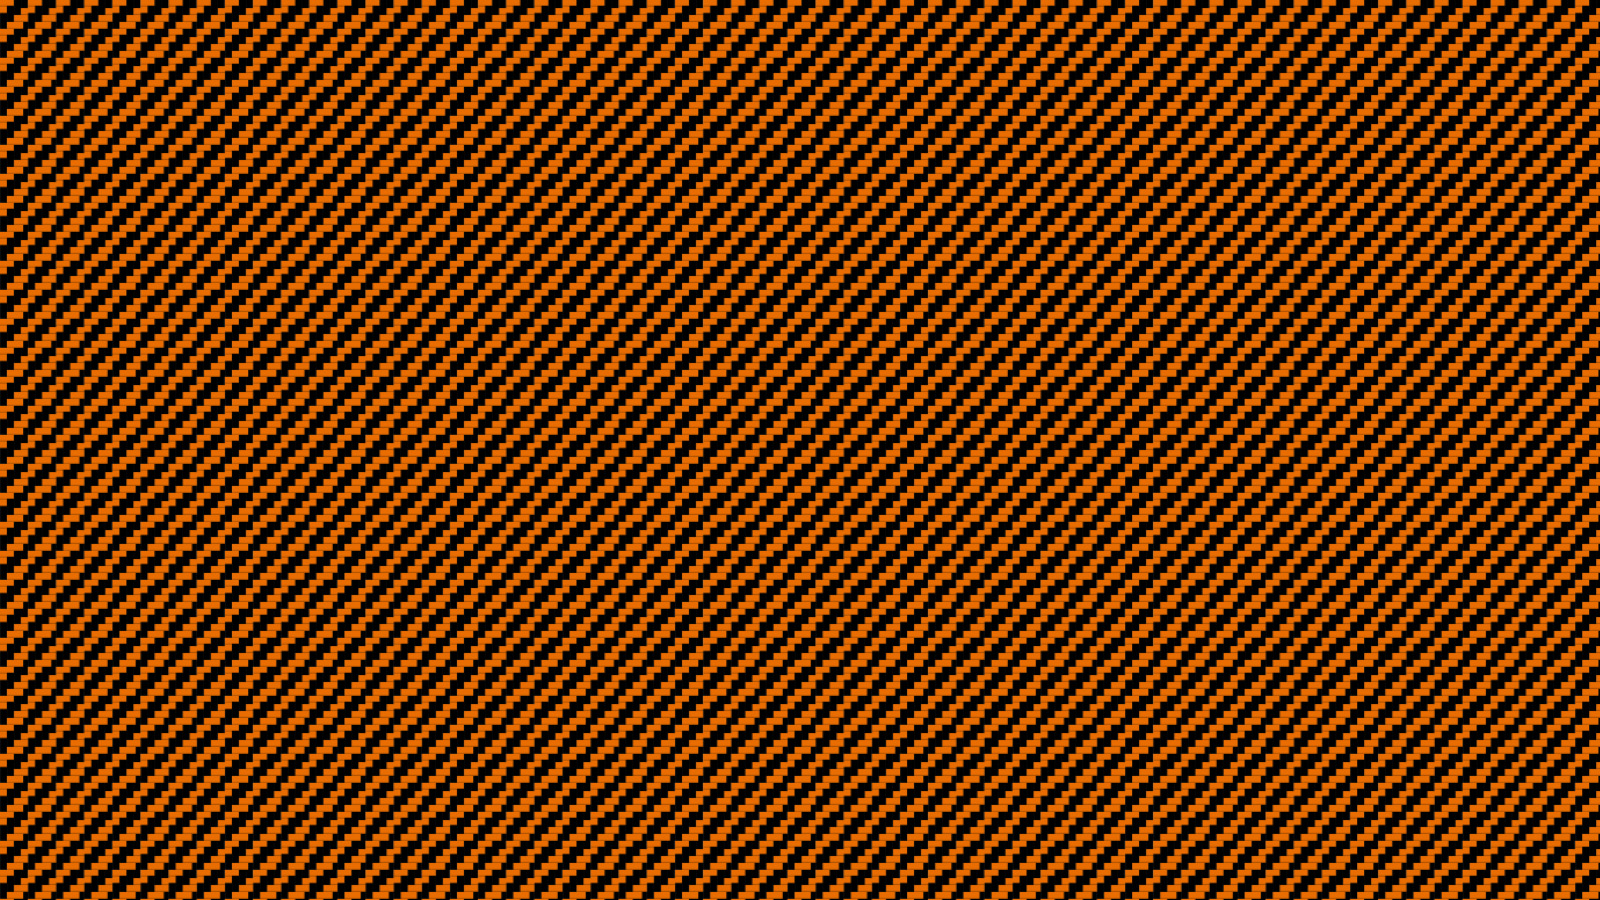 Orange Carbon Fiber Wallpaper Wallpapersafari